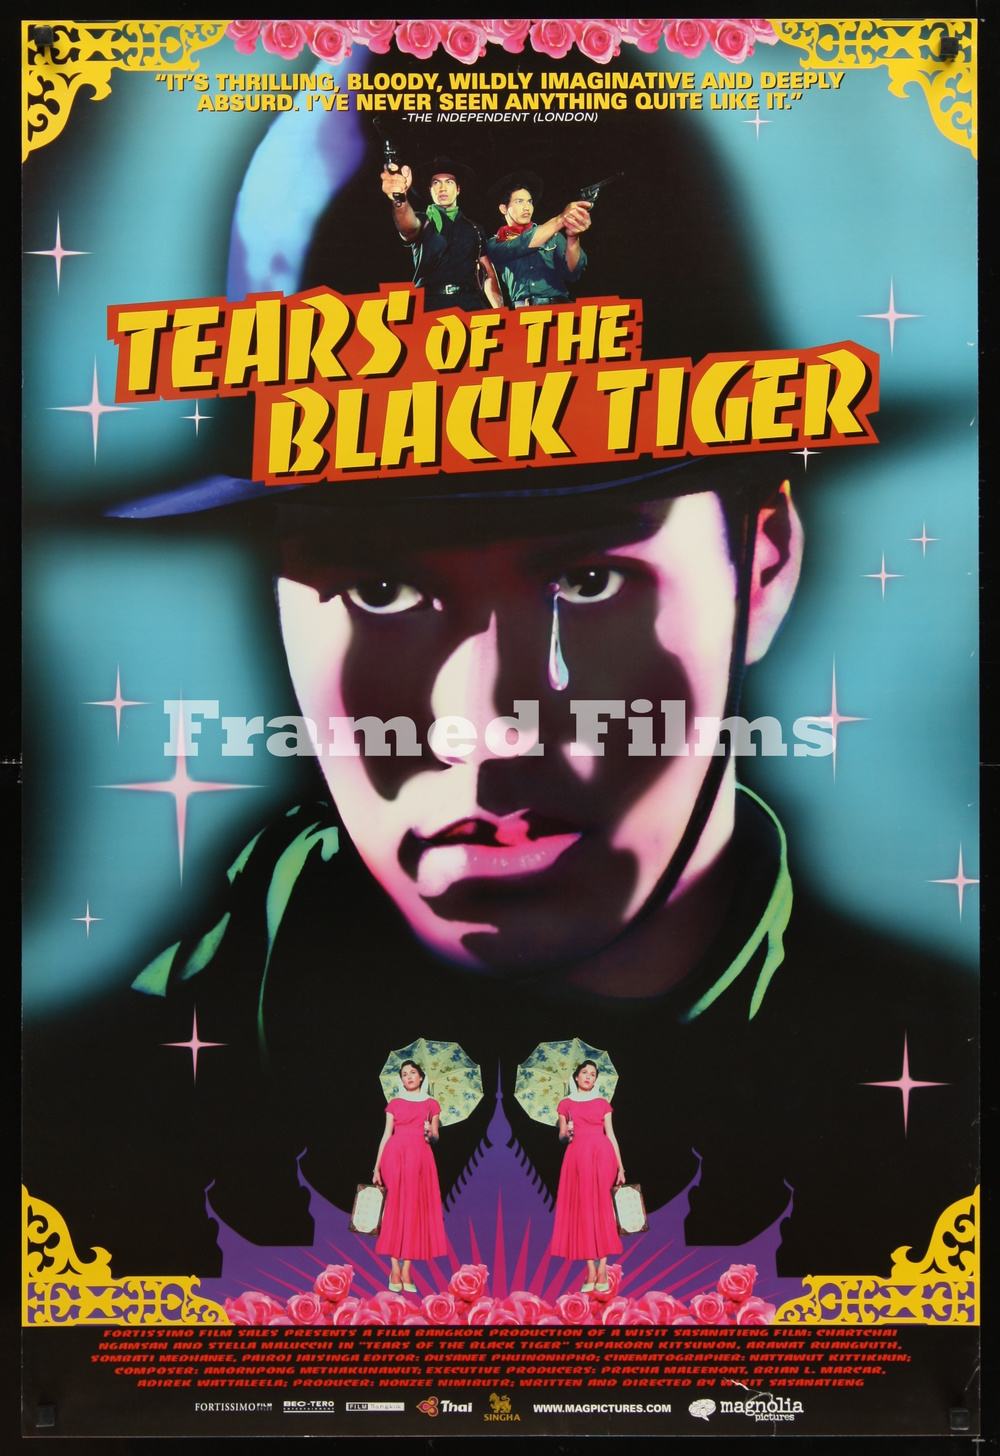 tears_of_the_black_tiger_HP00985_L.jpg